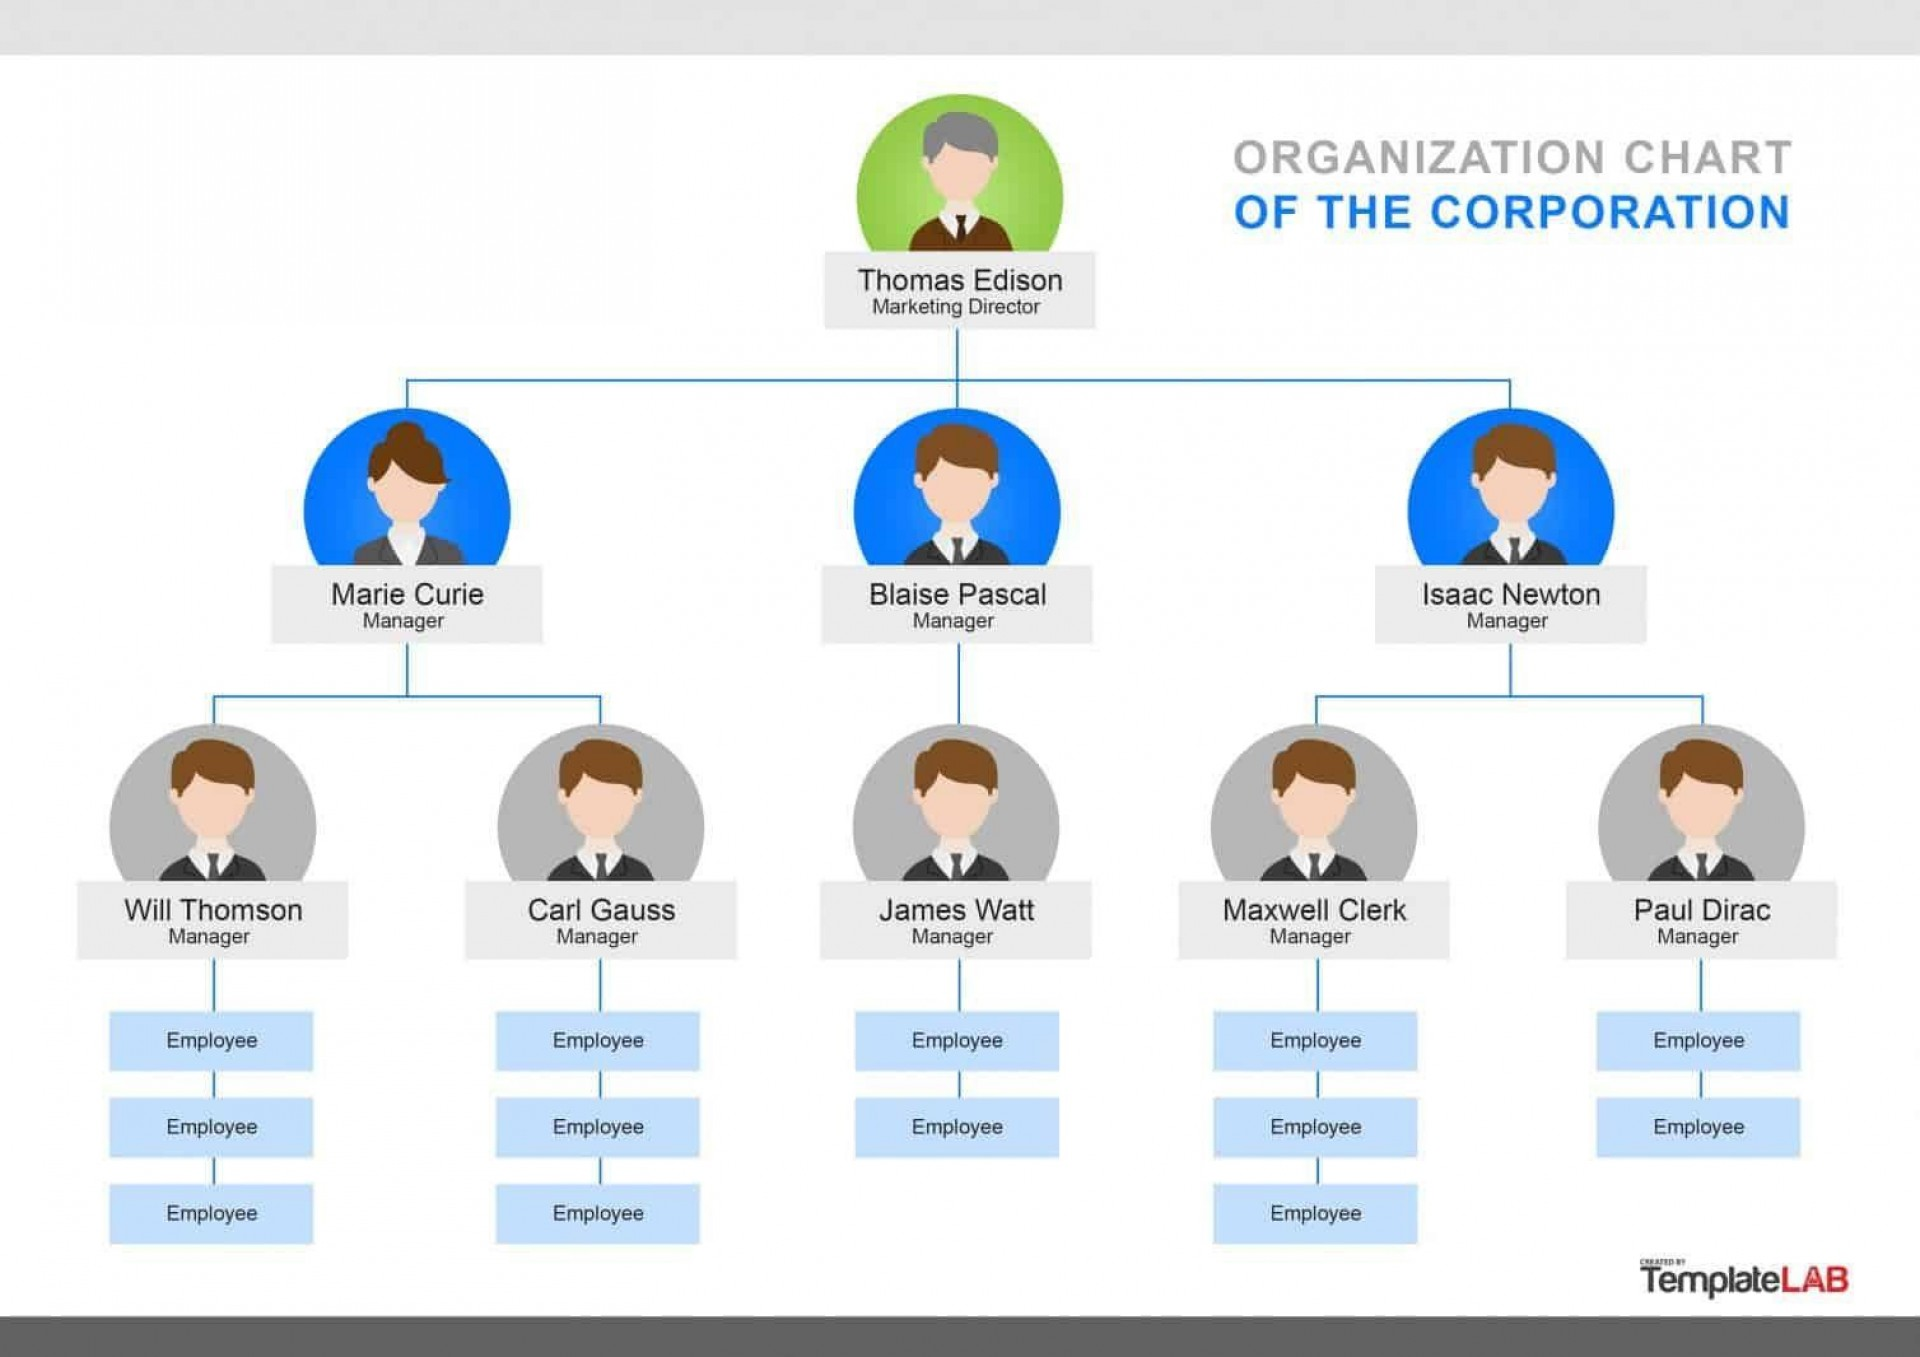 000 Archaicawful Organizational Chart In Microsoft Powerpoint 2010 High Definition 1920